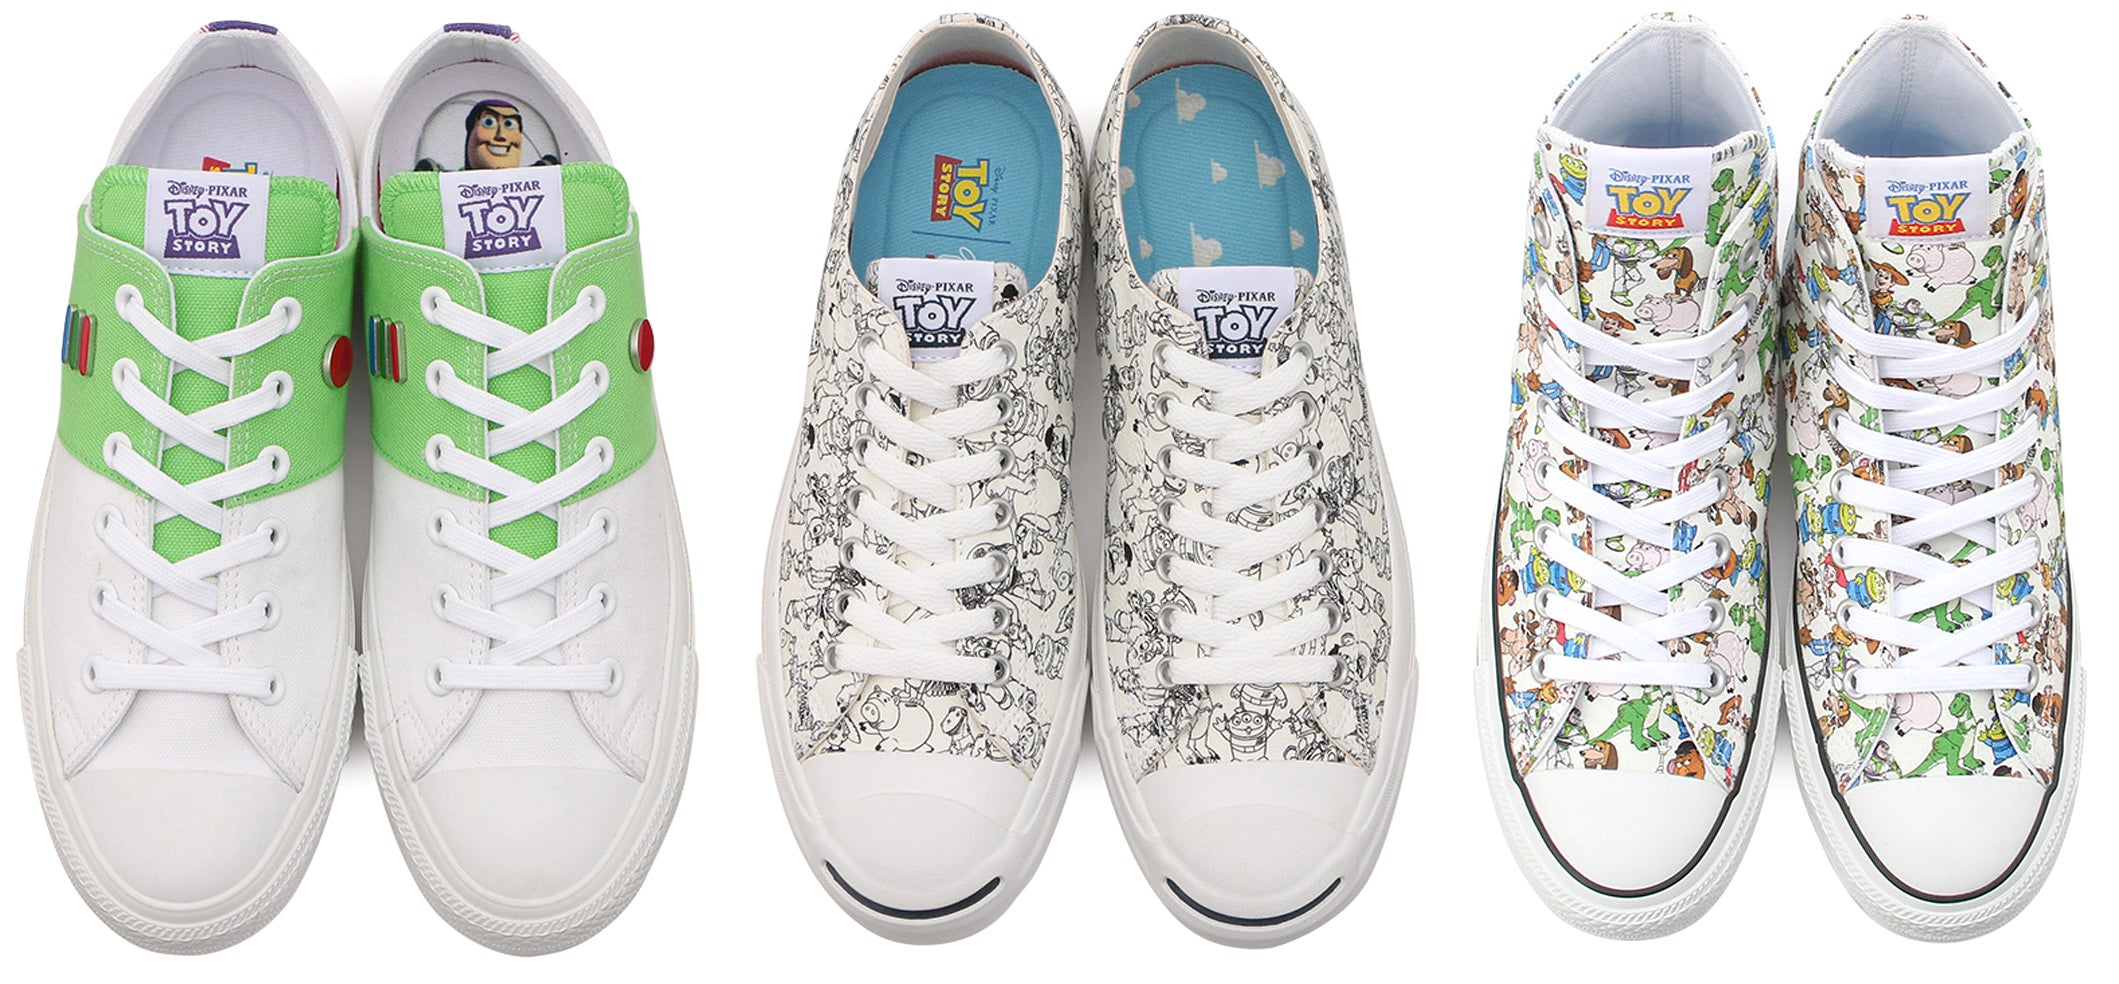 665e8c60b4 Converse Teamed Up With Pixar To Put Toy Story Characters On Your Classic  All Stars